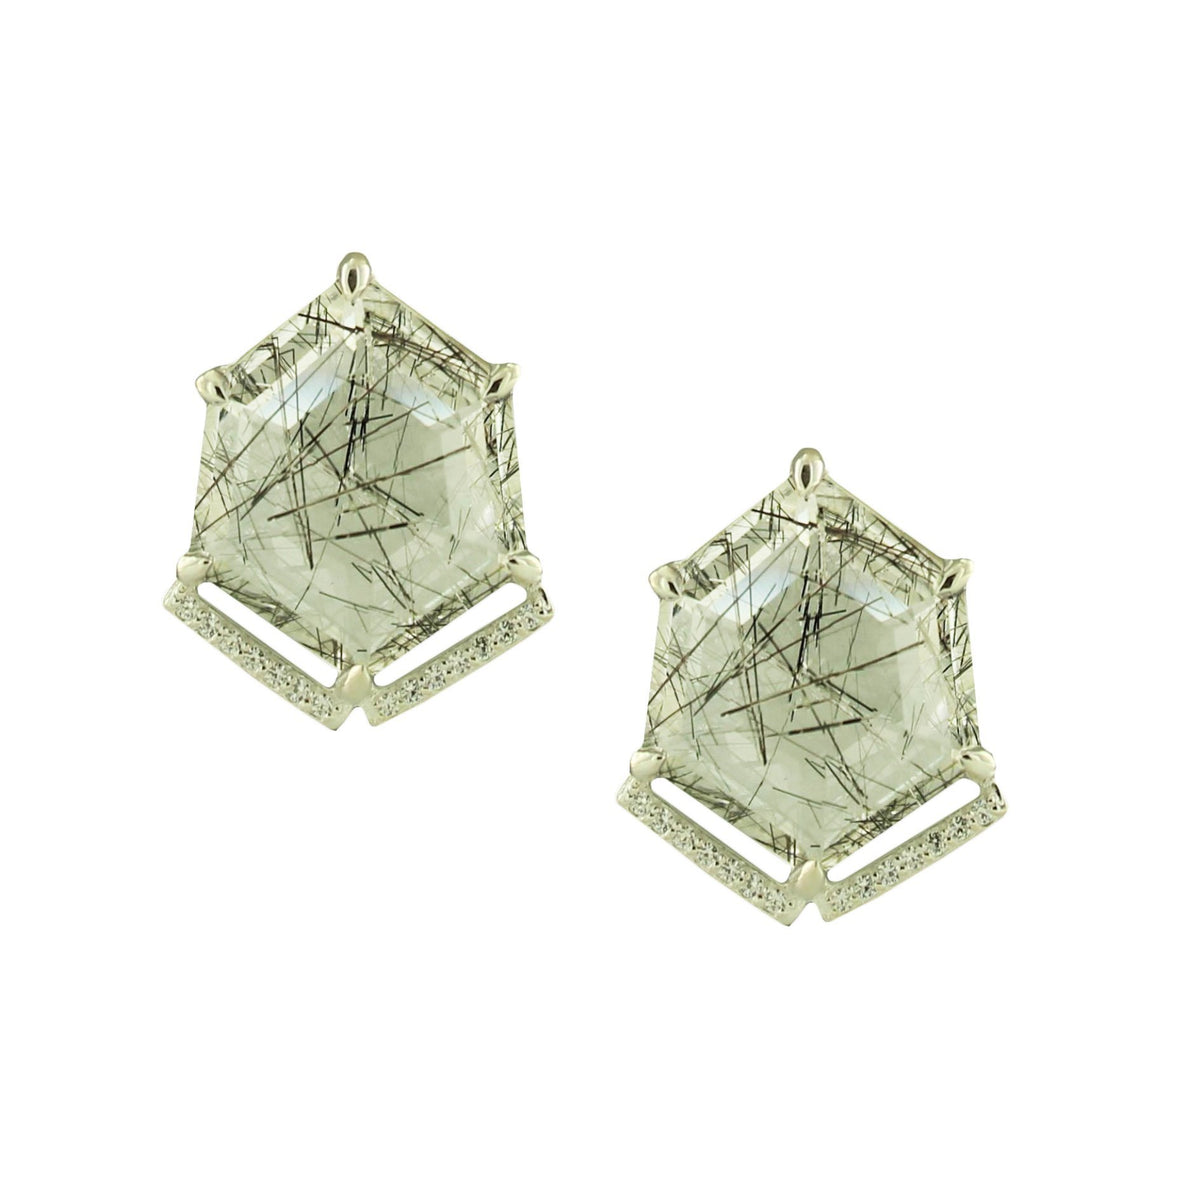 HONOUR SHIELD STATEMENT EARRINGS - BLACK RUTILE QUARTZ & SILVER - SO PRETTY CARA COTTER